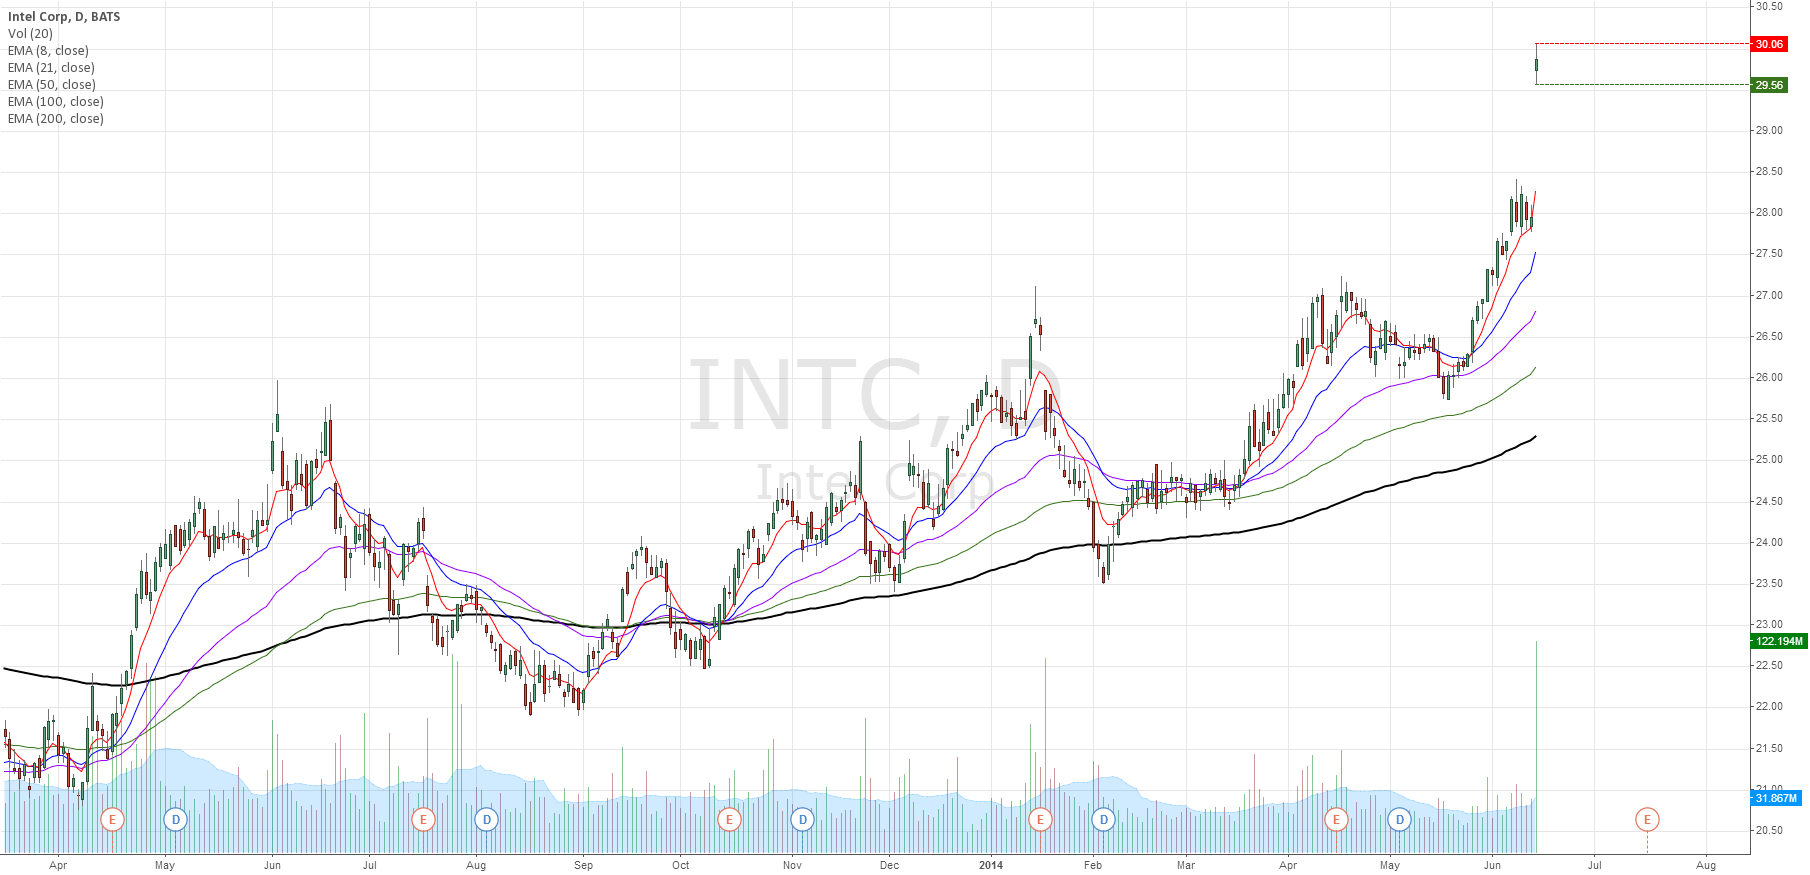 ITNC gap up on upside guidance